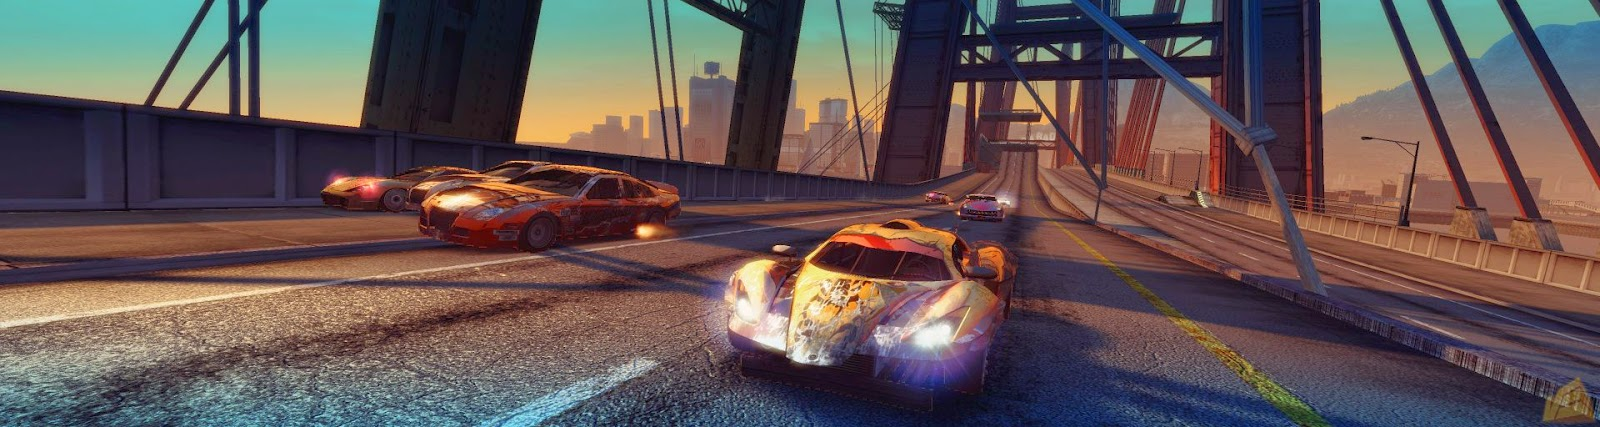 Burnout Paradise Highly Compressed 580 Mb